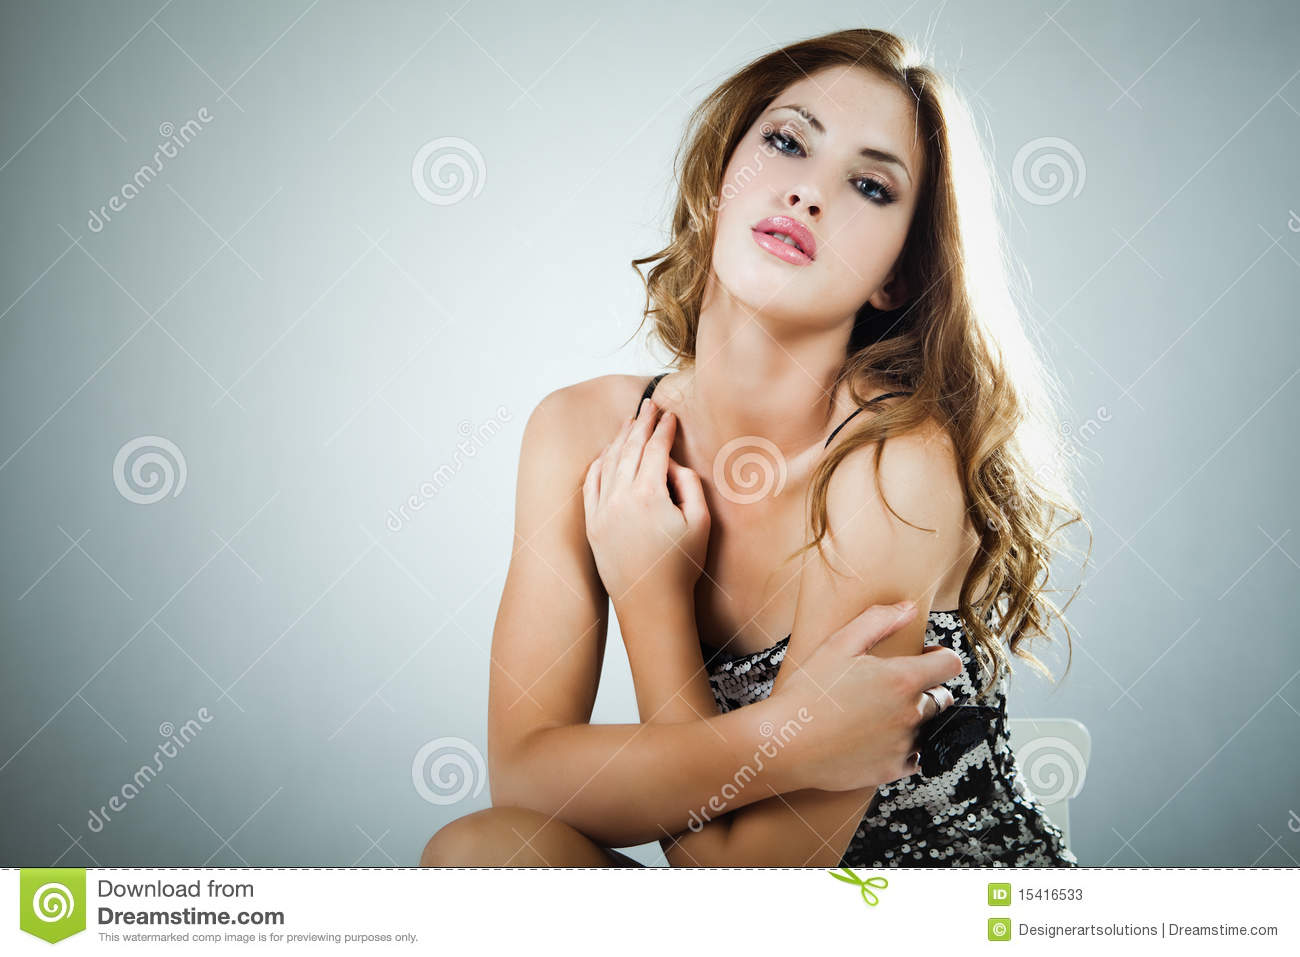 Portrait of an Attractive Young Woman